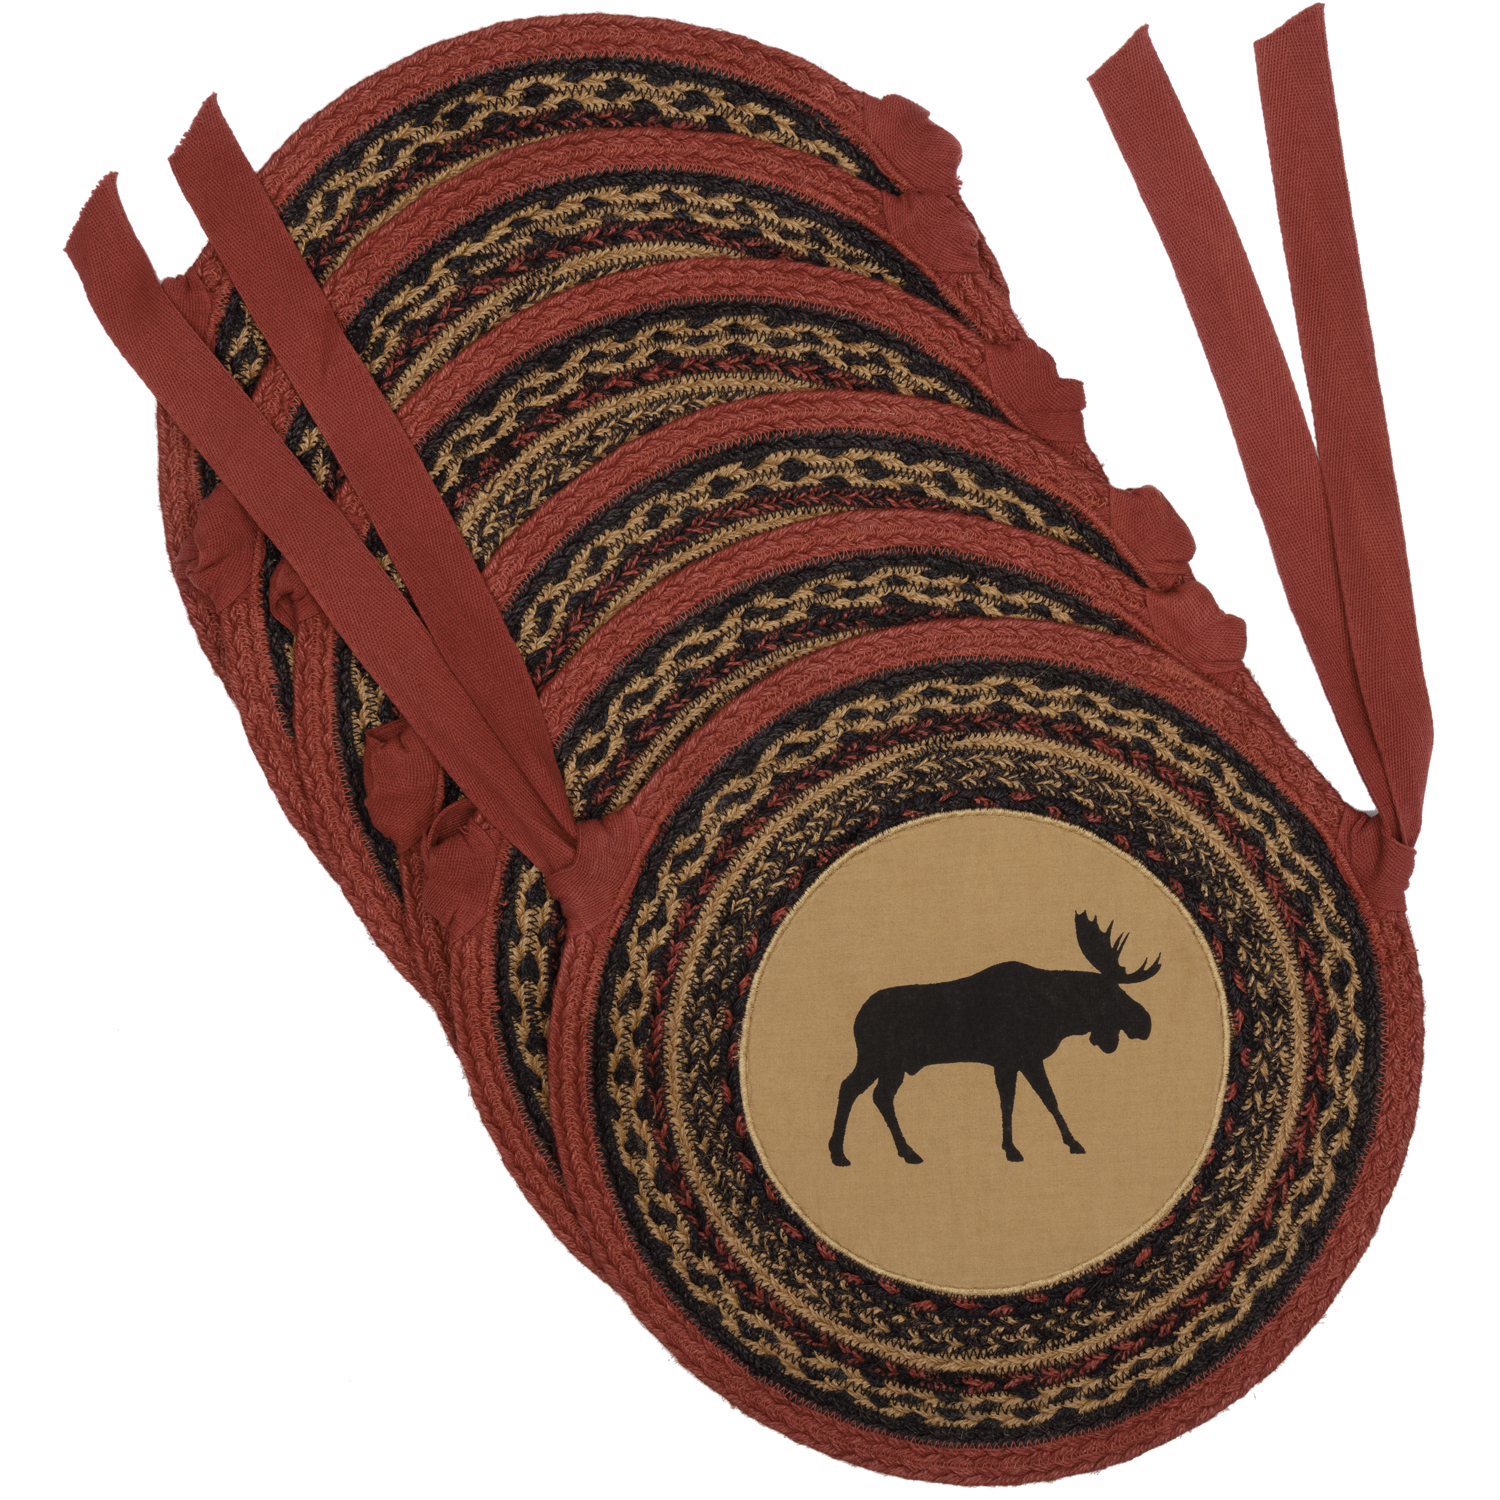 Cumberland-Moose-Applique-Jute-Chair-Pad-Set-of-6-image-2